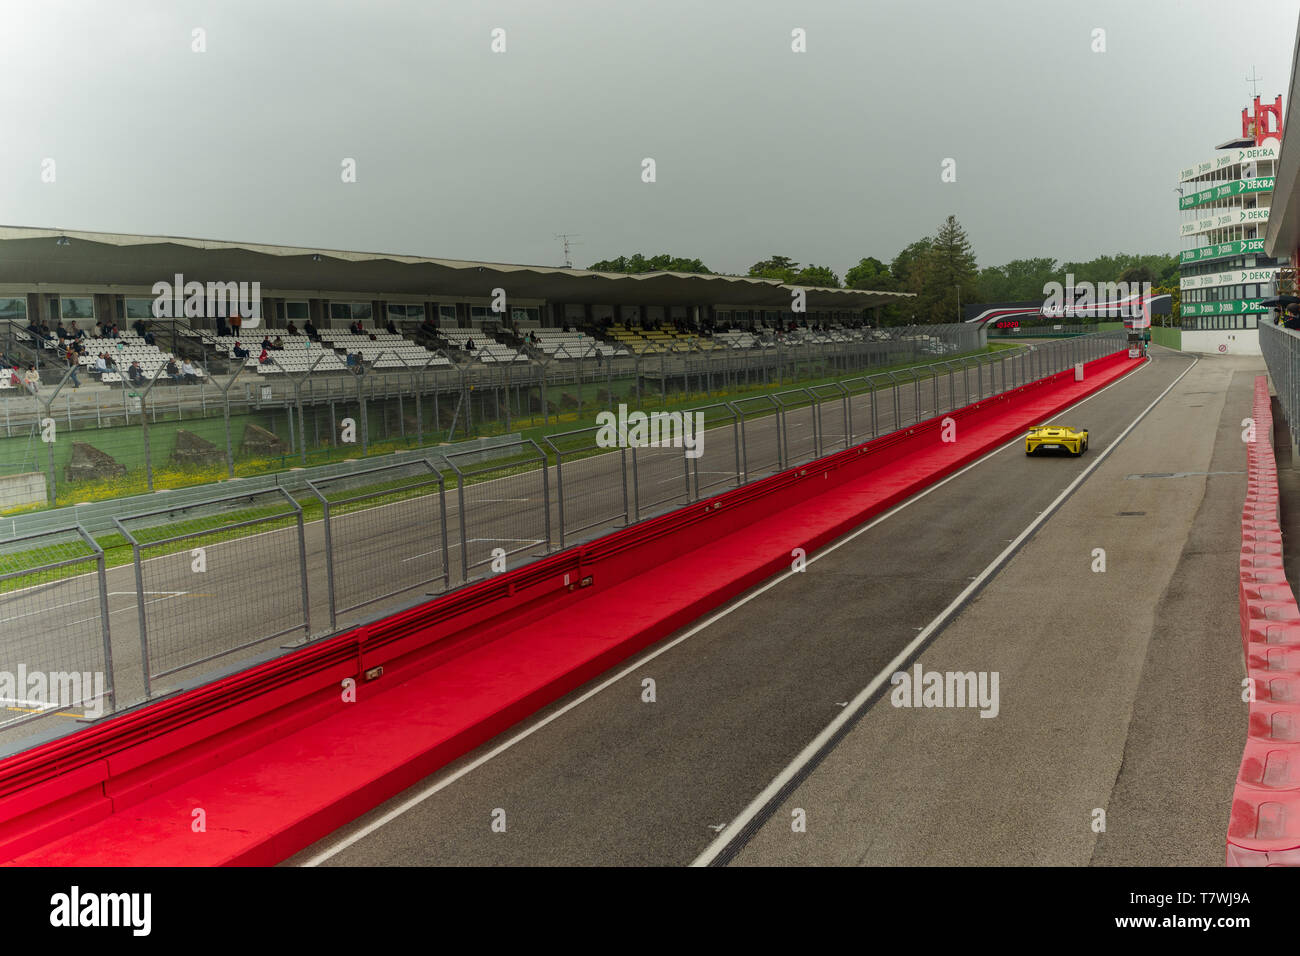 le mans series car is approaching the the Imola track Stock Photo